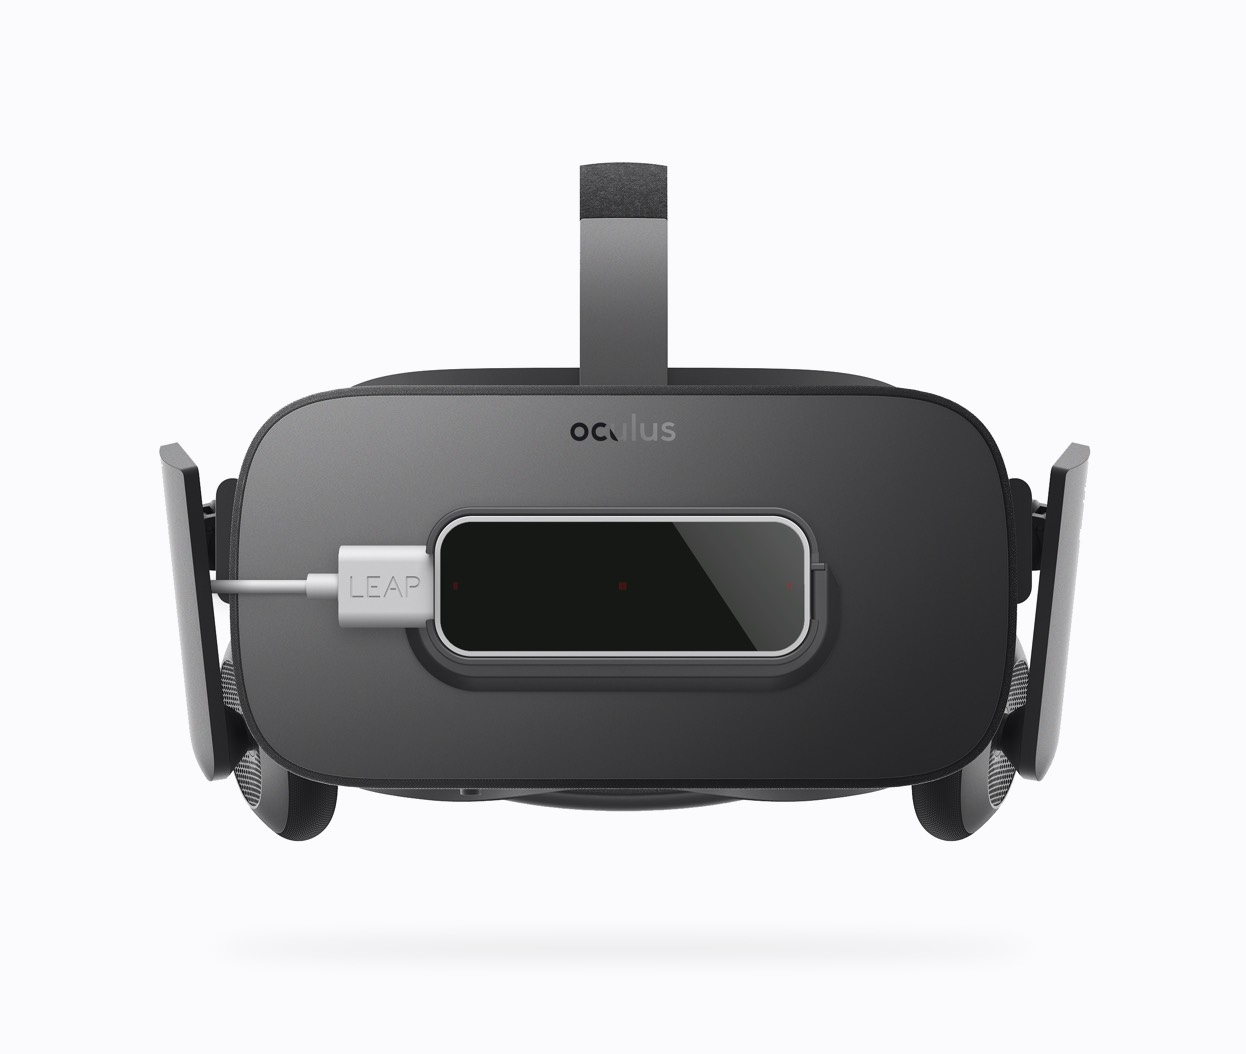 Leap Motion Oculus Rift mount